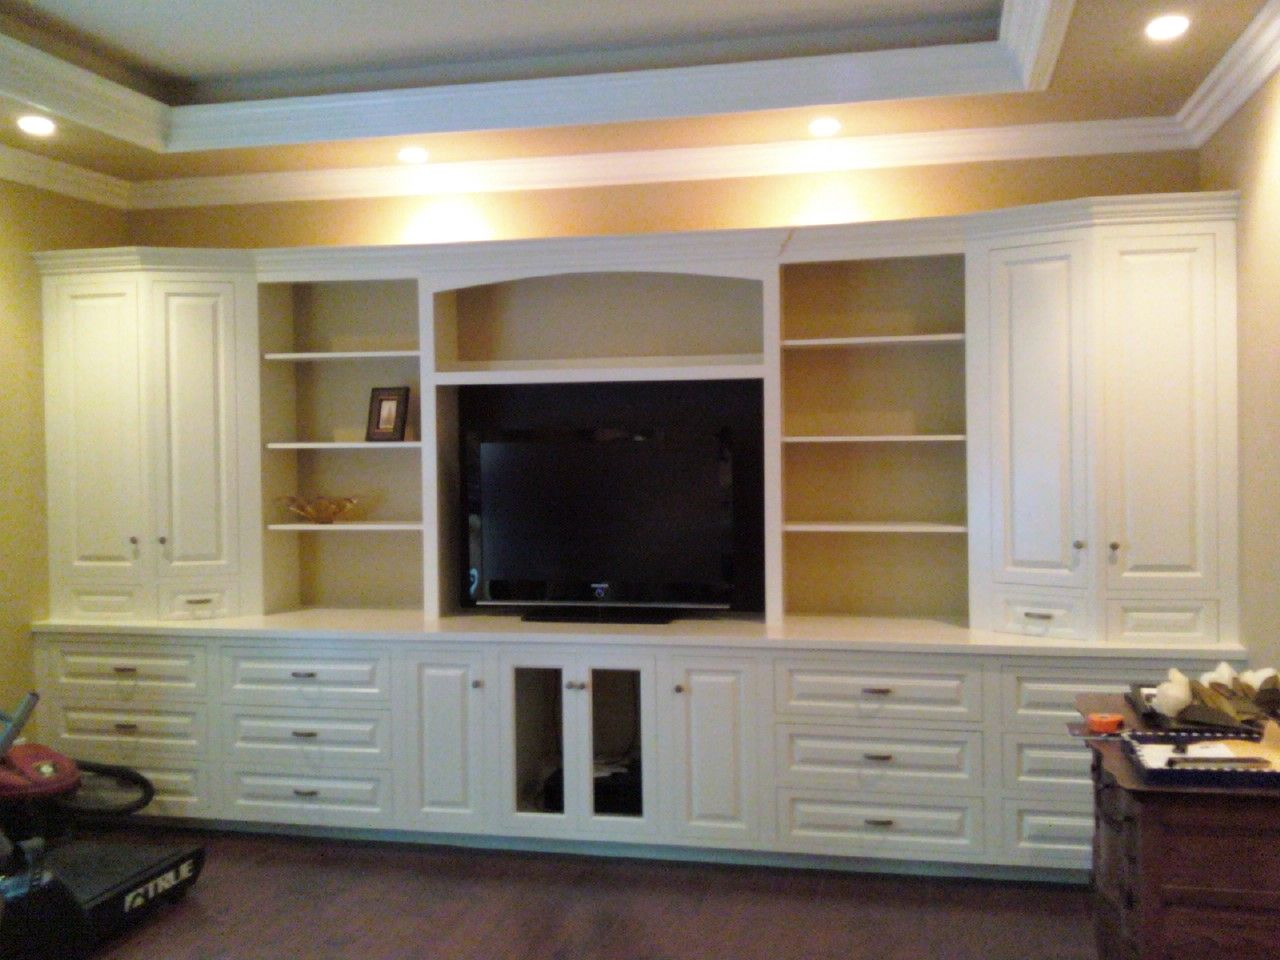 Living room wall units with storage wall units design for Wall units for living room